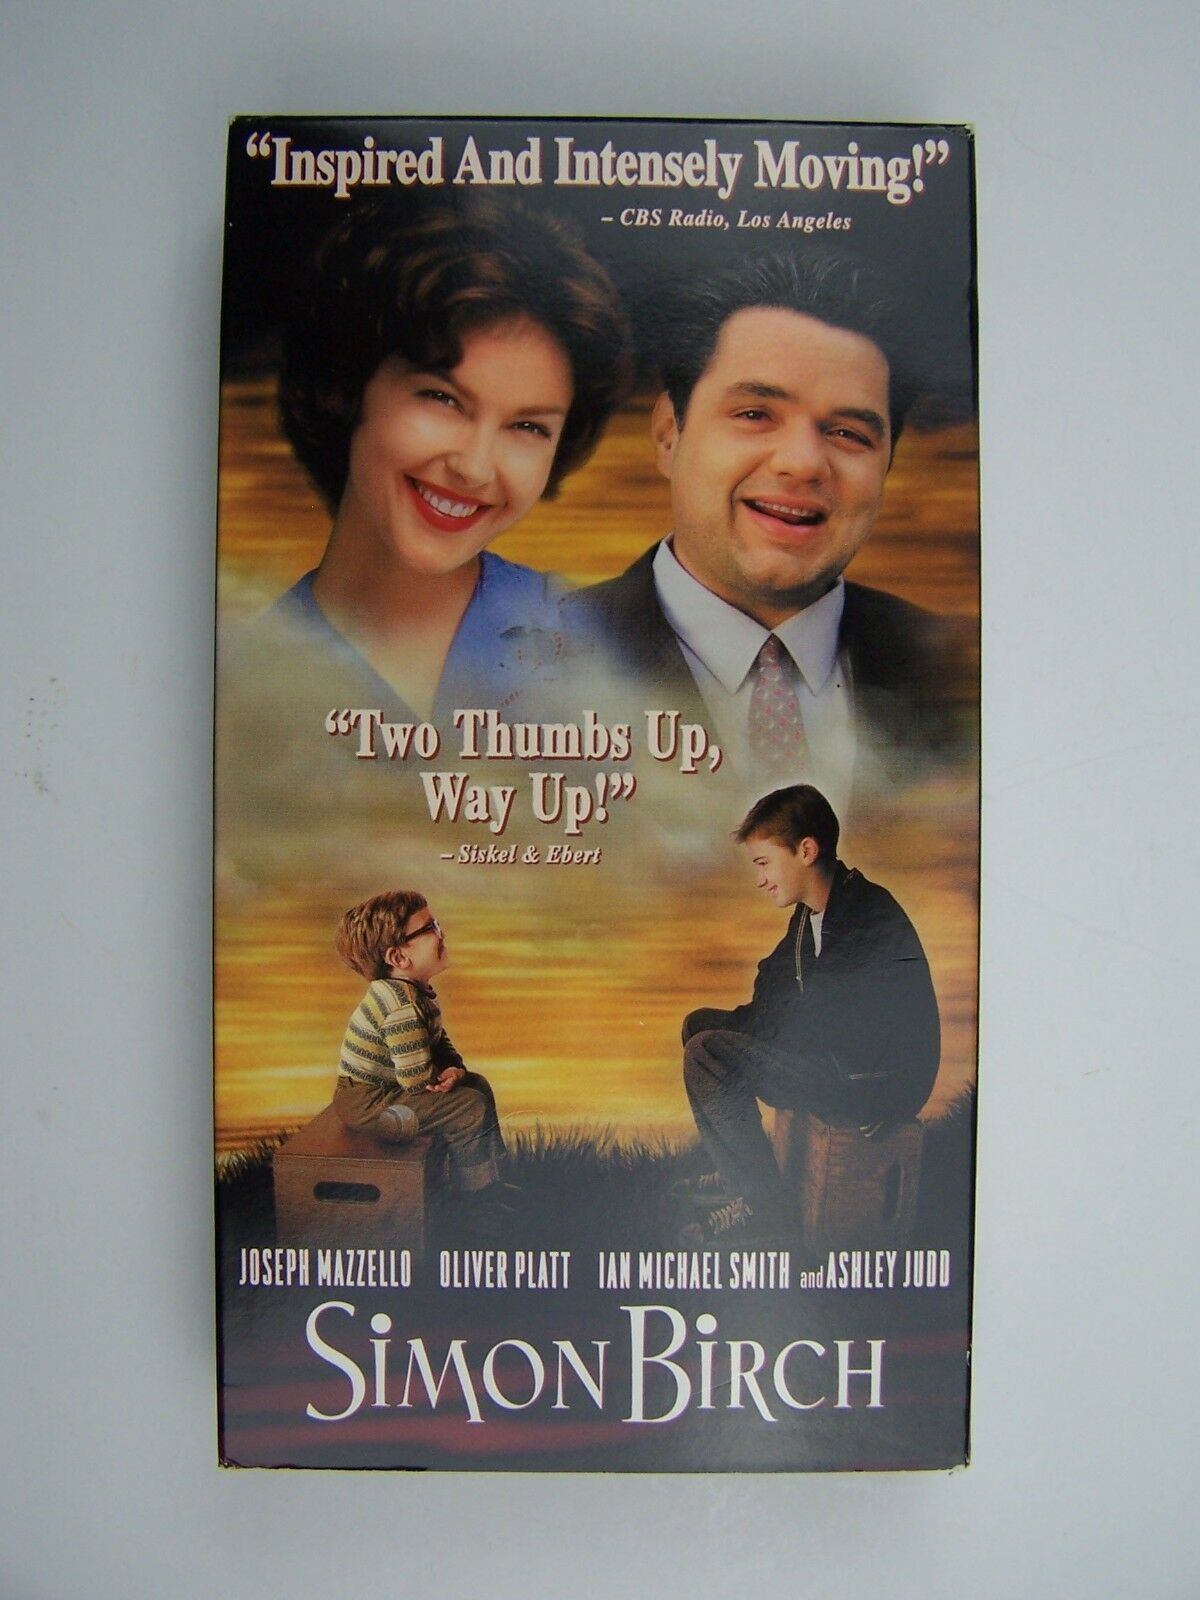 Simon Birch VHS Video Tape Ashley Judd